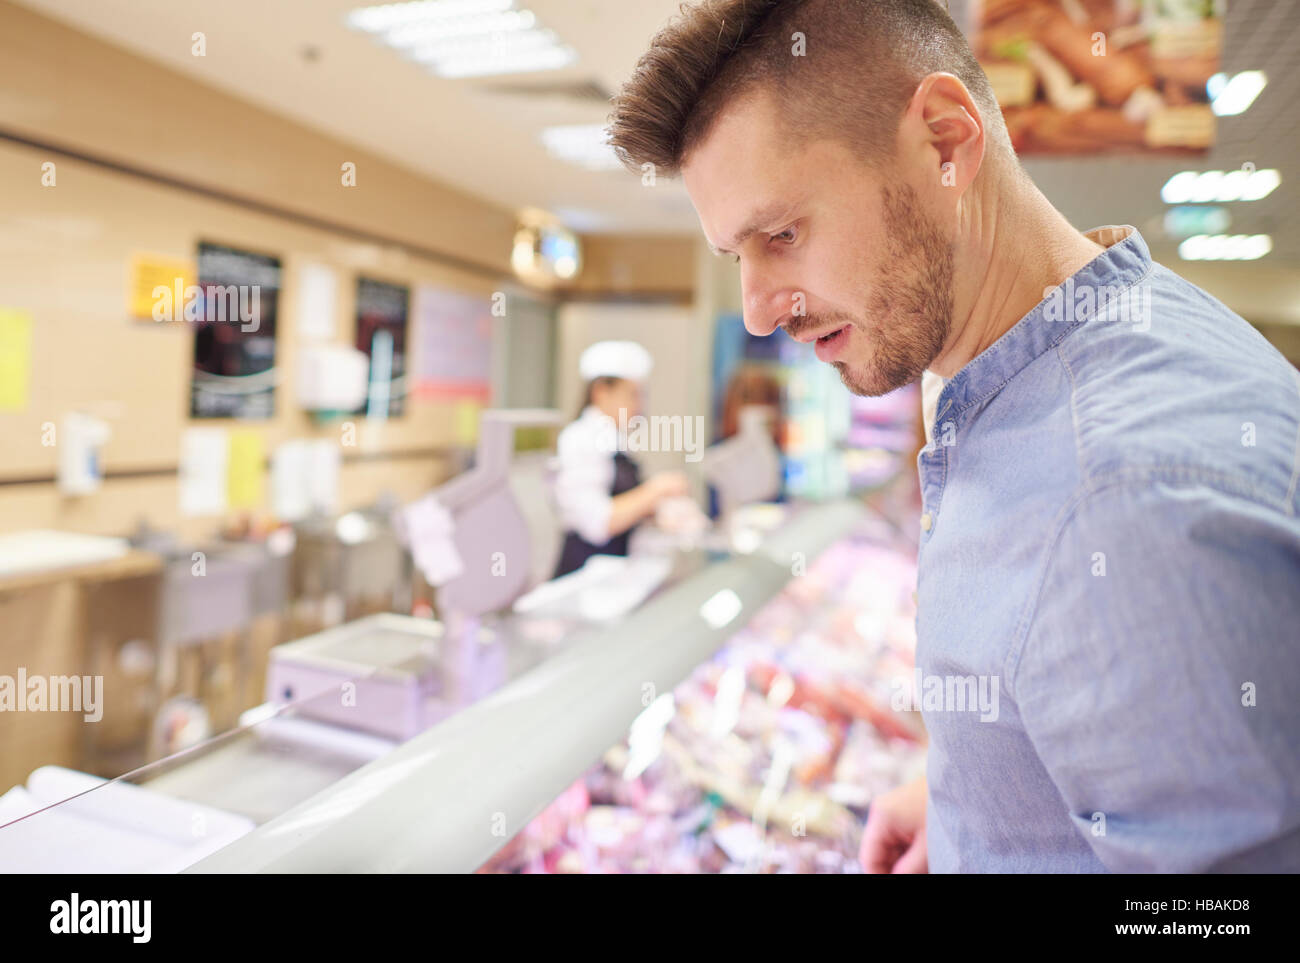 Man looking for products in meat area - Stock Image